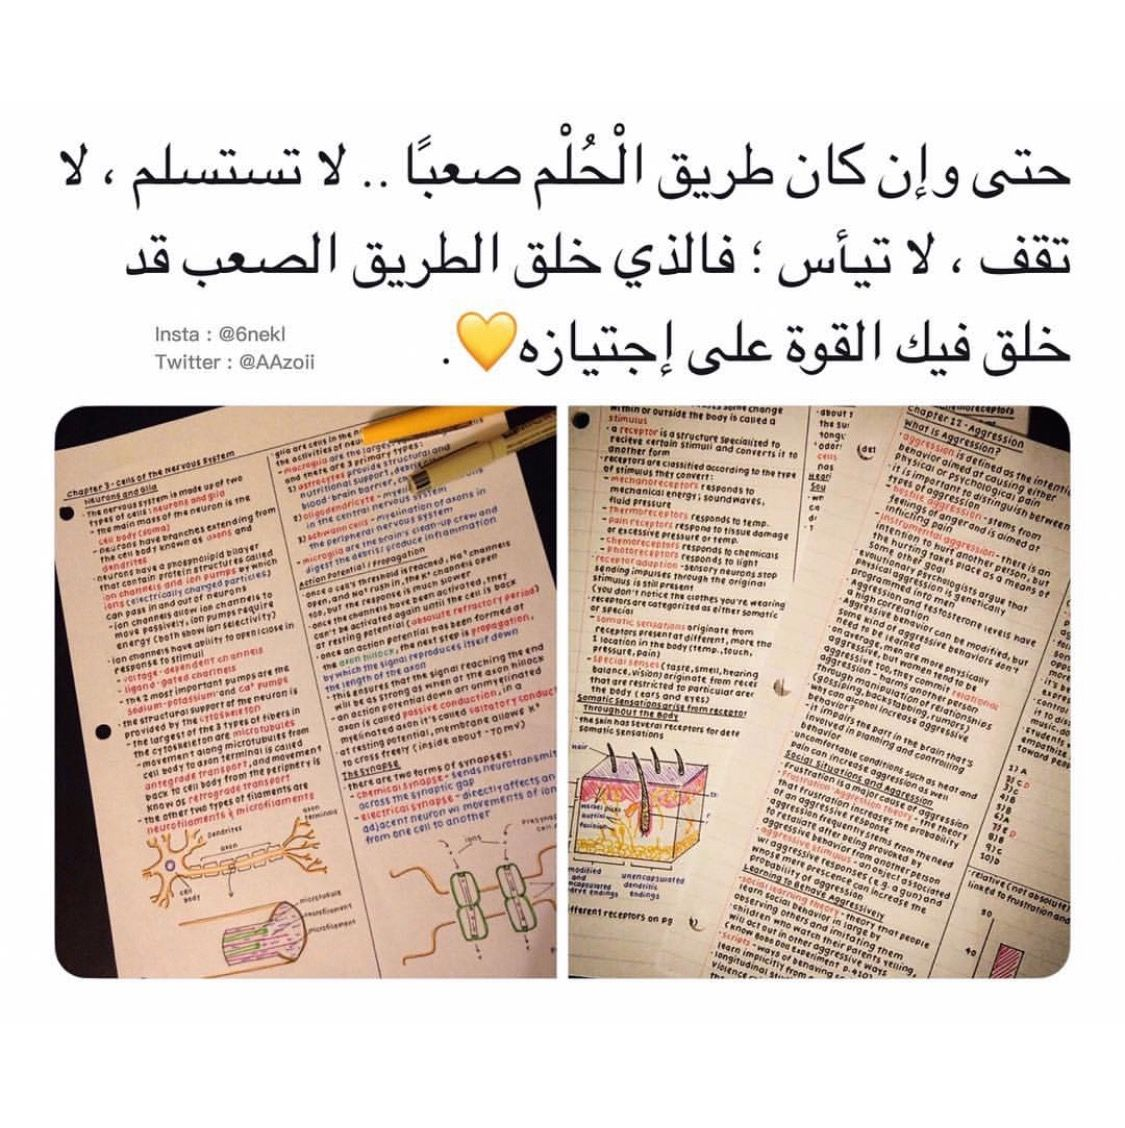 Pin By Sawsan Al Aqtash On حلم الطفولة Childs Dream Study Motivation Quotes Study Quotes Inspirational Quotes Pictures